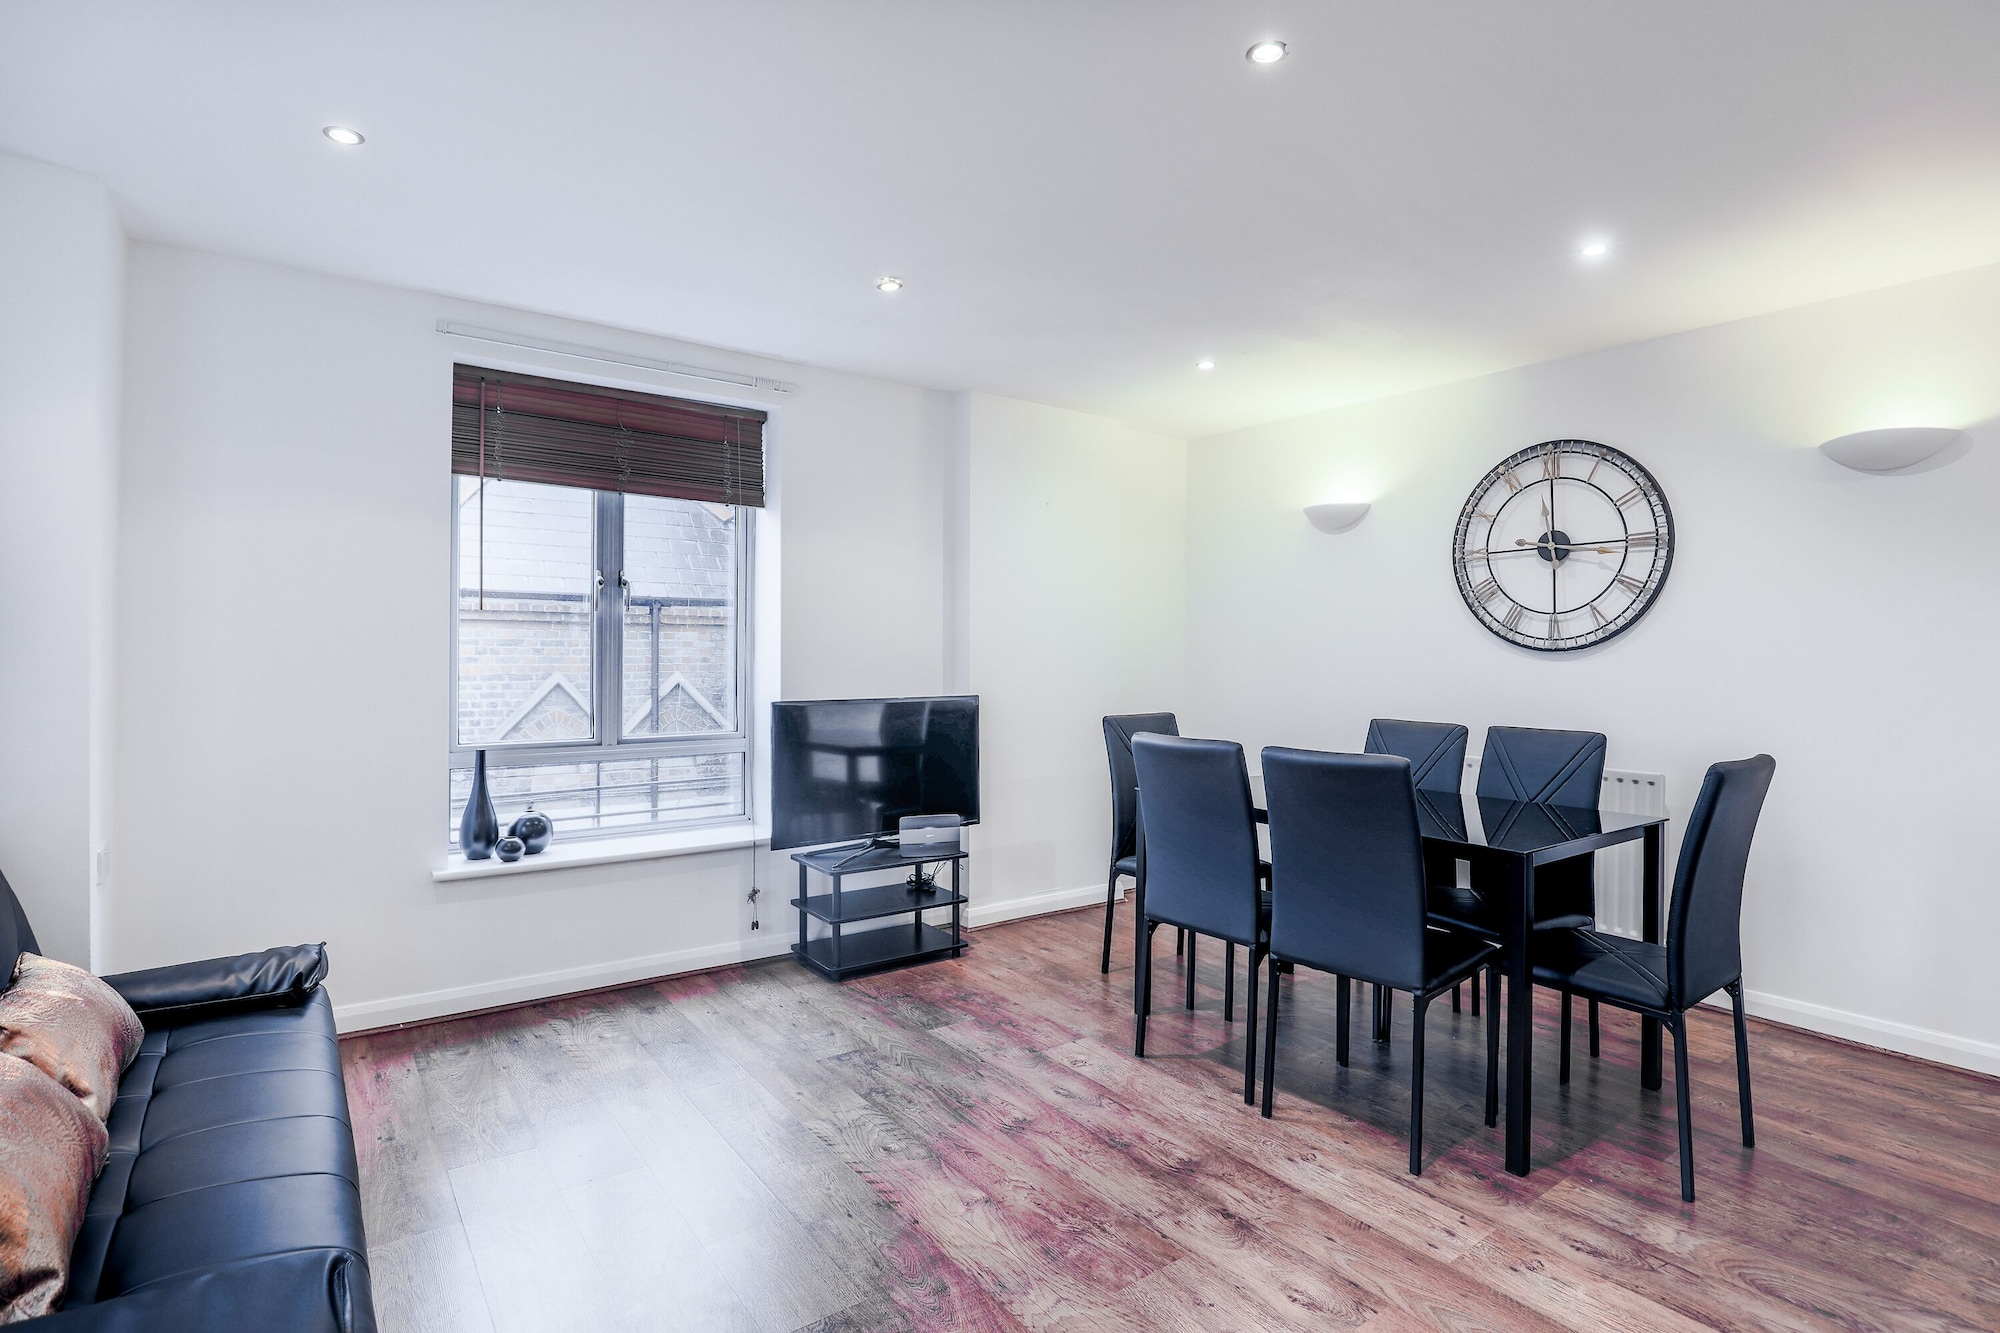 New Cross Apartment by Emerald, London